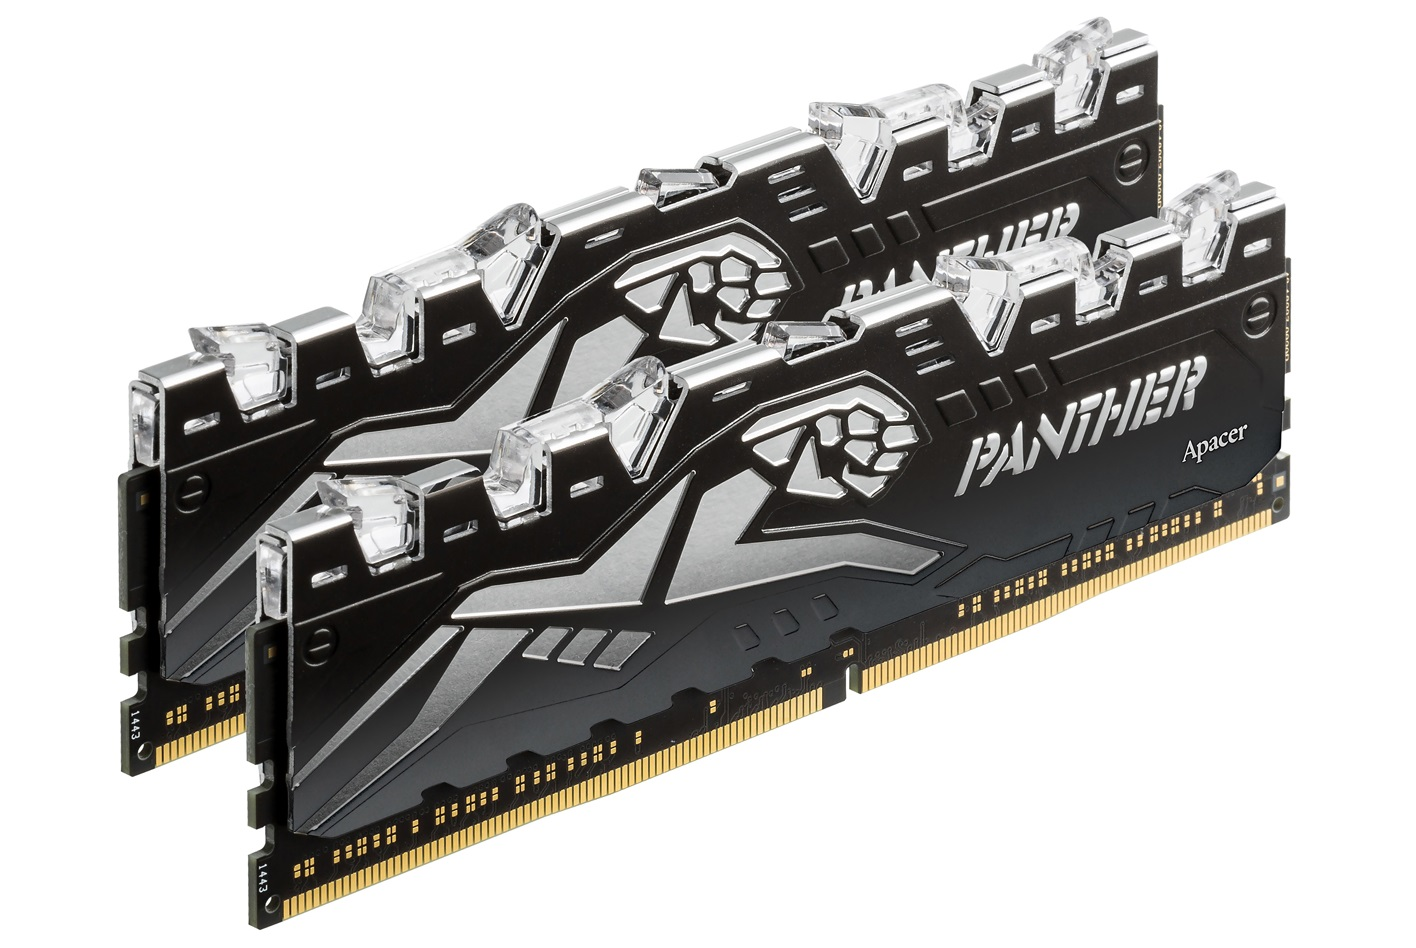 Apacer PANTHER RAGE DDR4 Illumination Gaming Memory Module